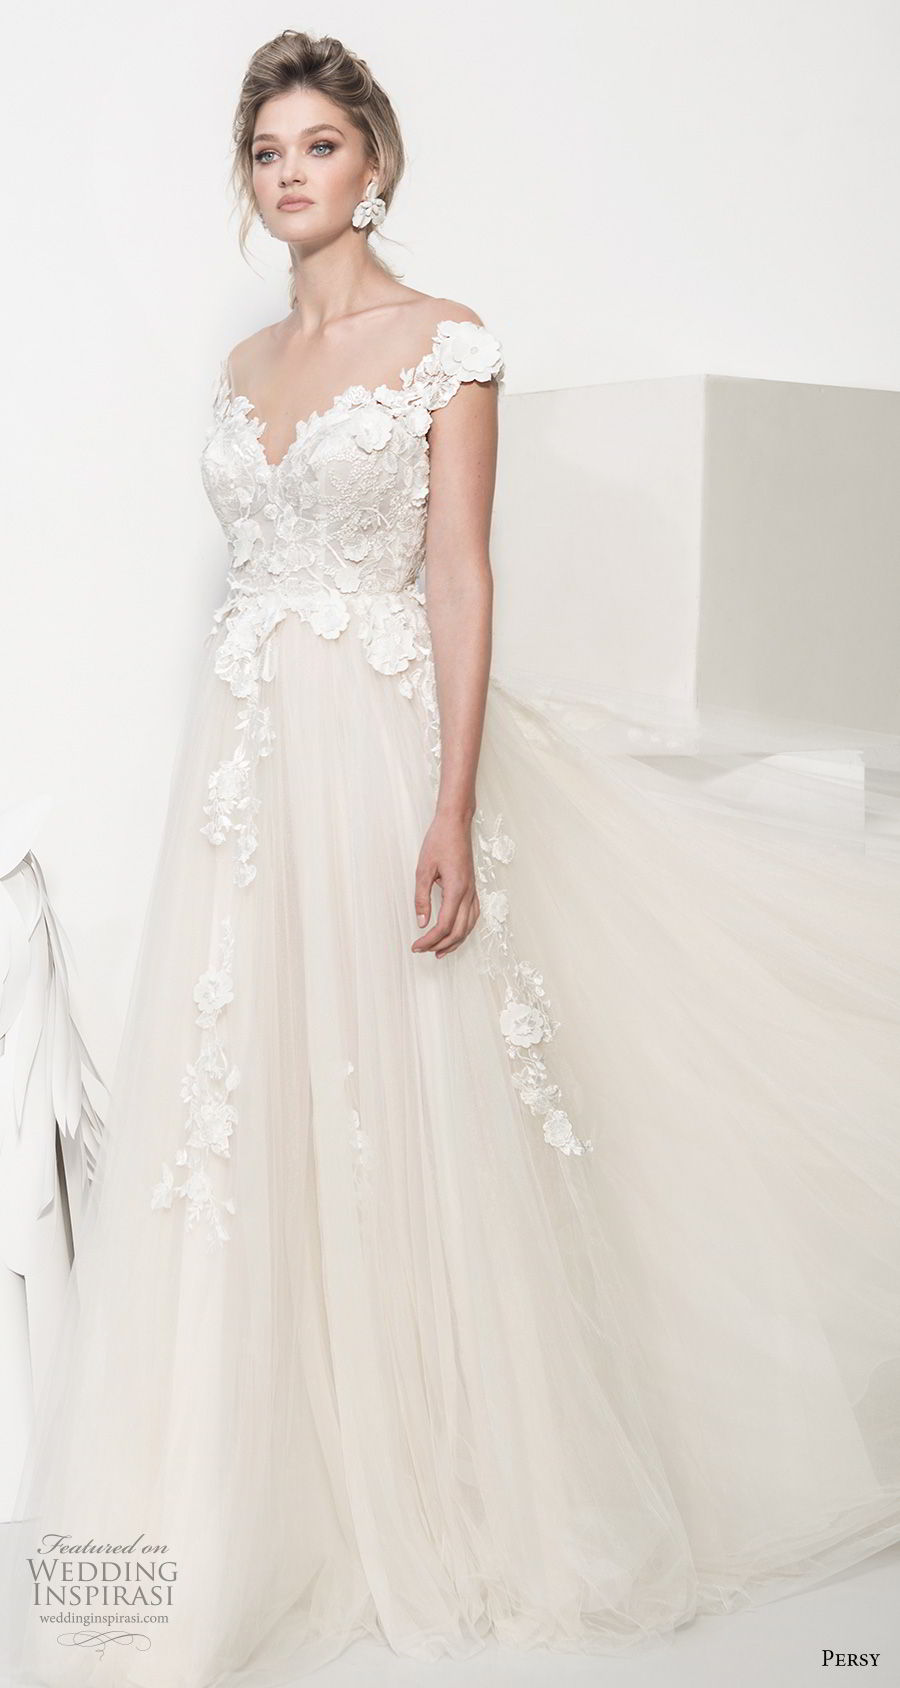 persy couture 2019 bridal cap sleeves sweetheart neckline heavily embellished bodice romantic champagne soft a line wedding dress chapel train (7) mv